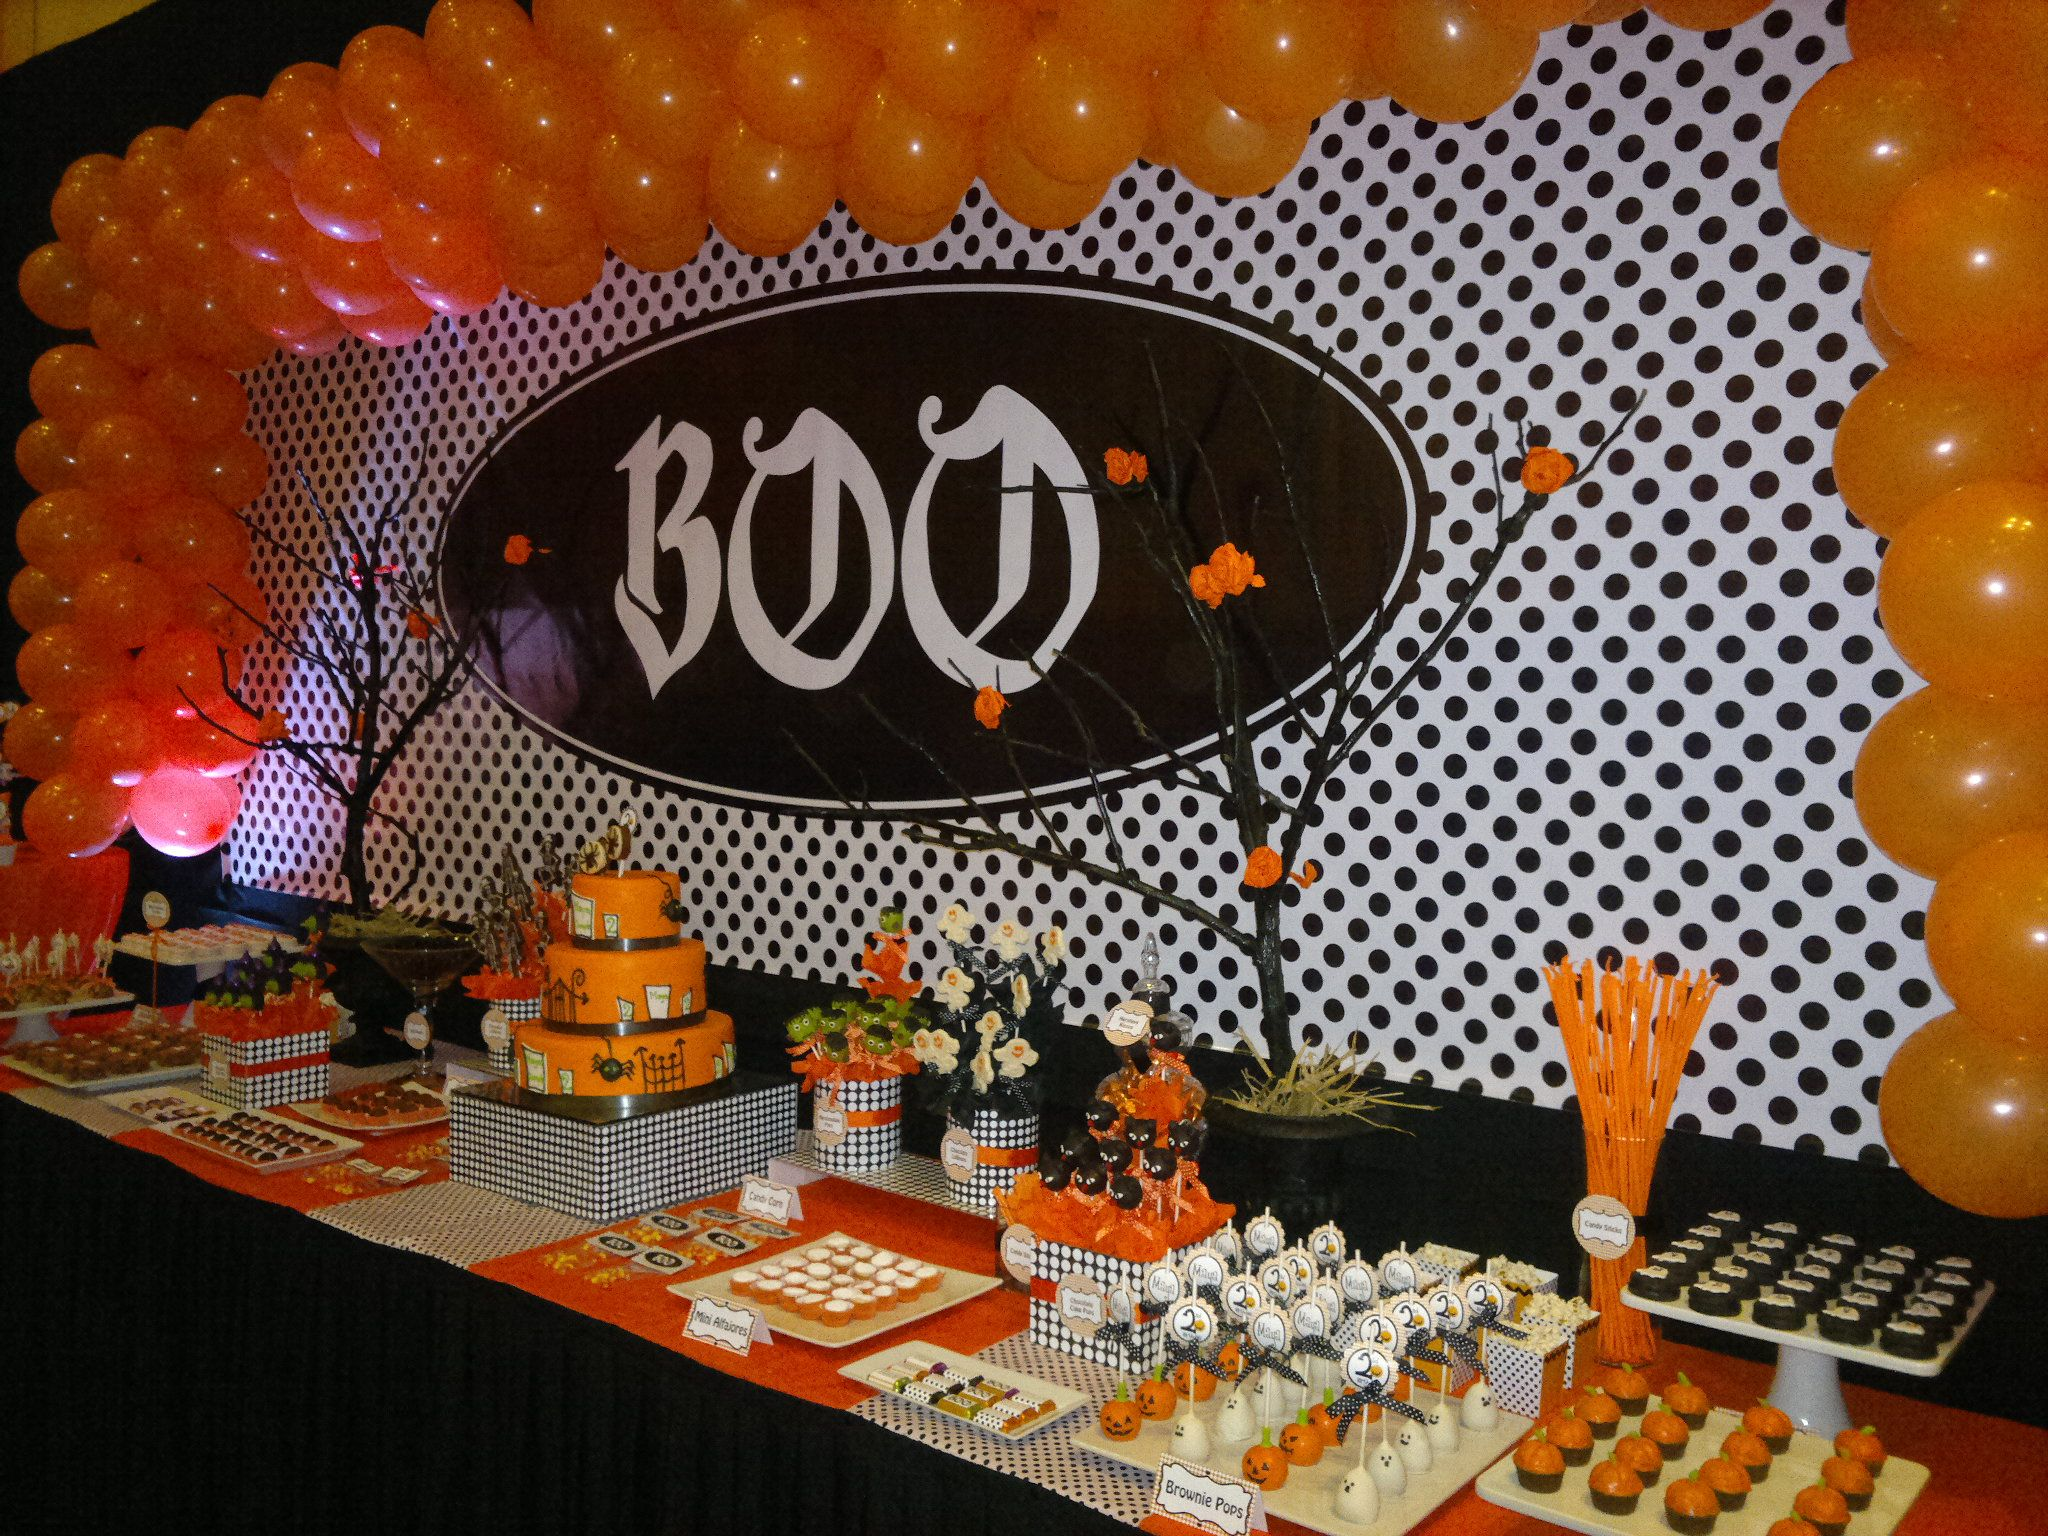 Decoraciones De Halloween Faciles Halloween Decoracion Halloween Cumpleaños Cumpleaños